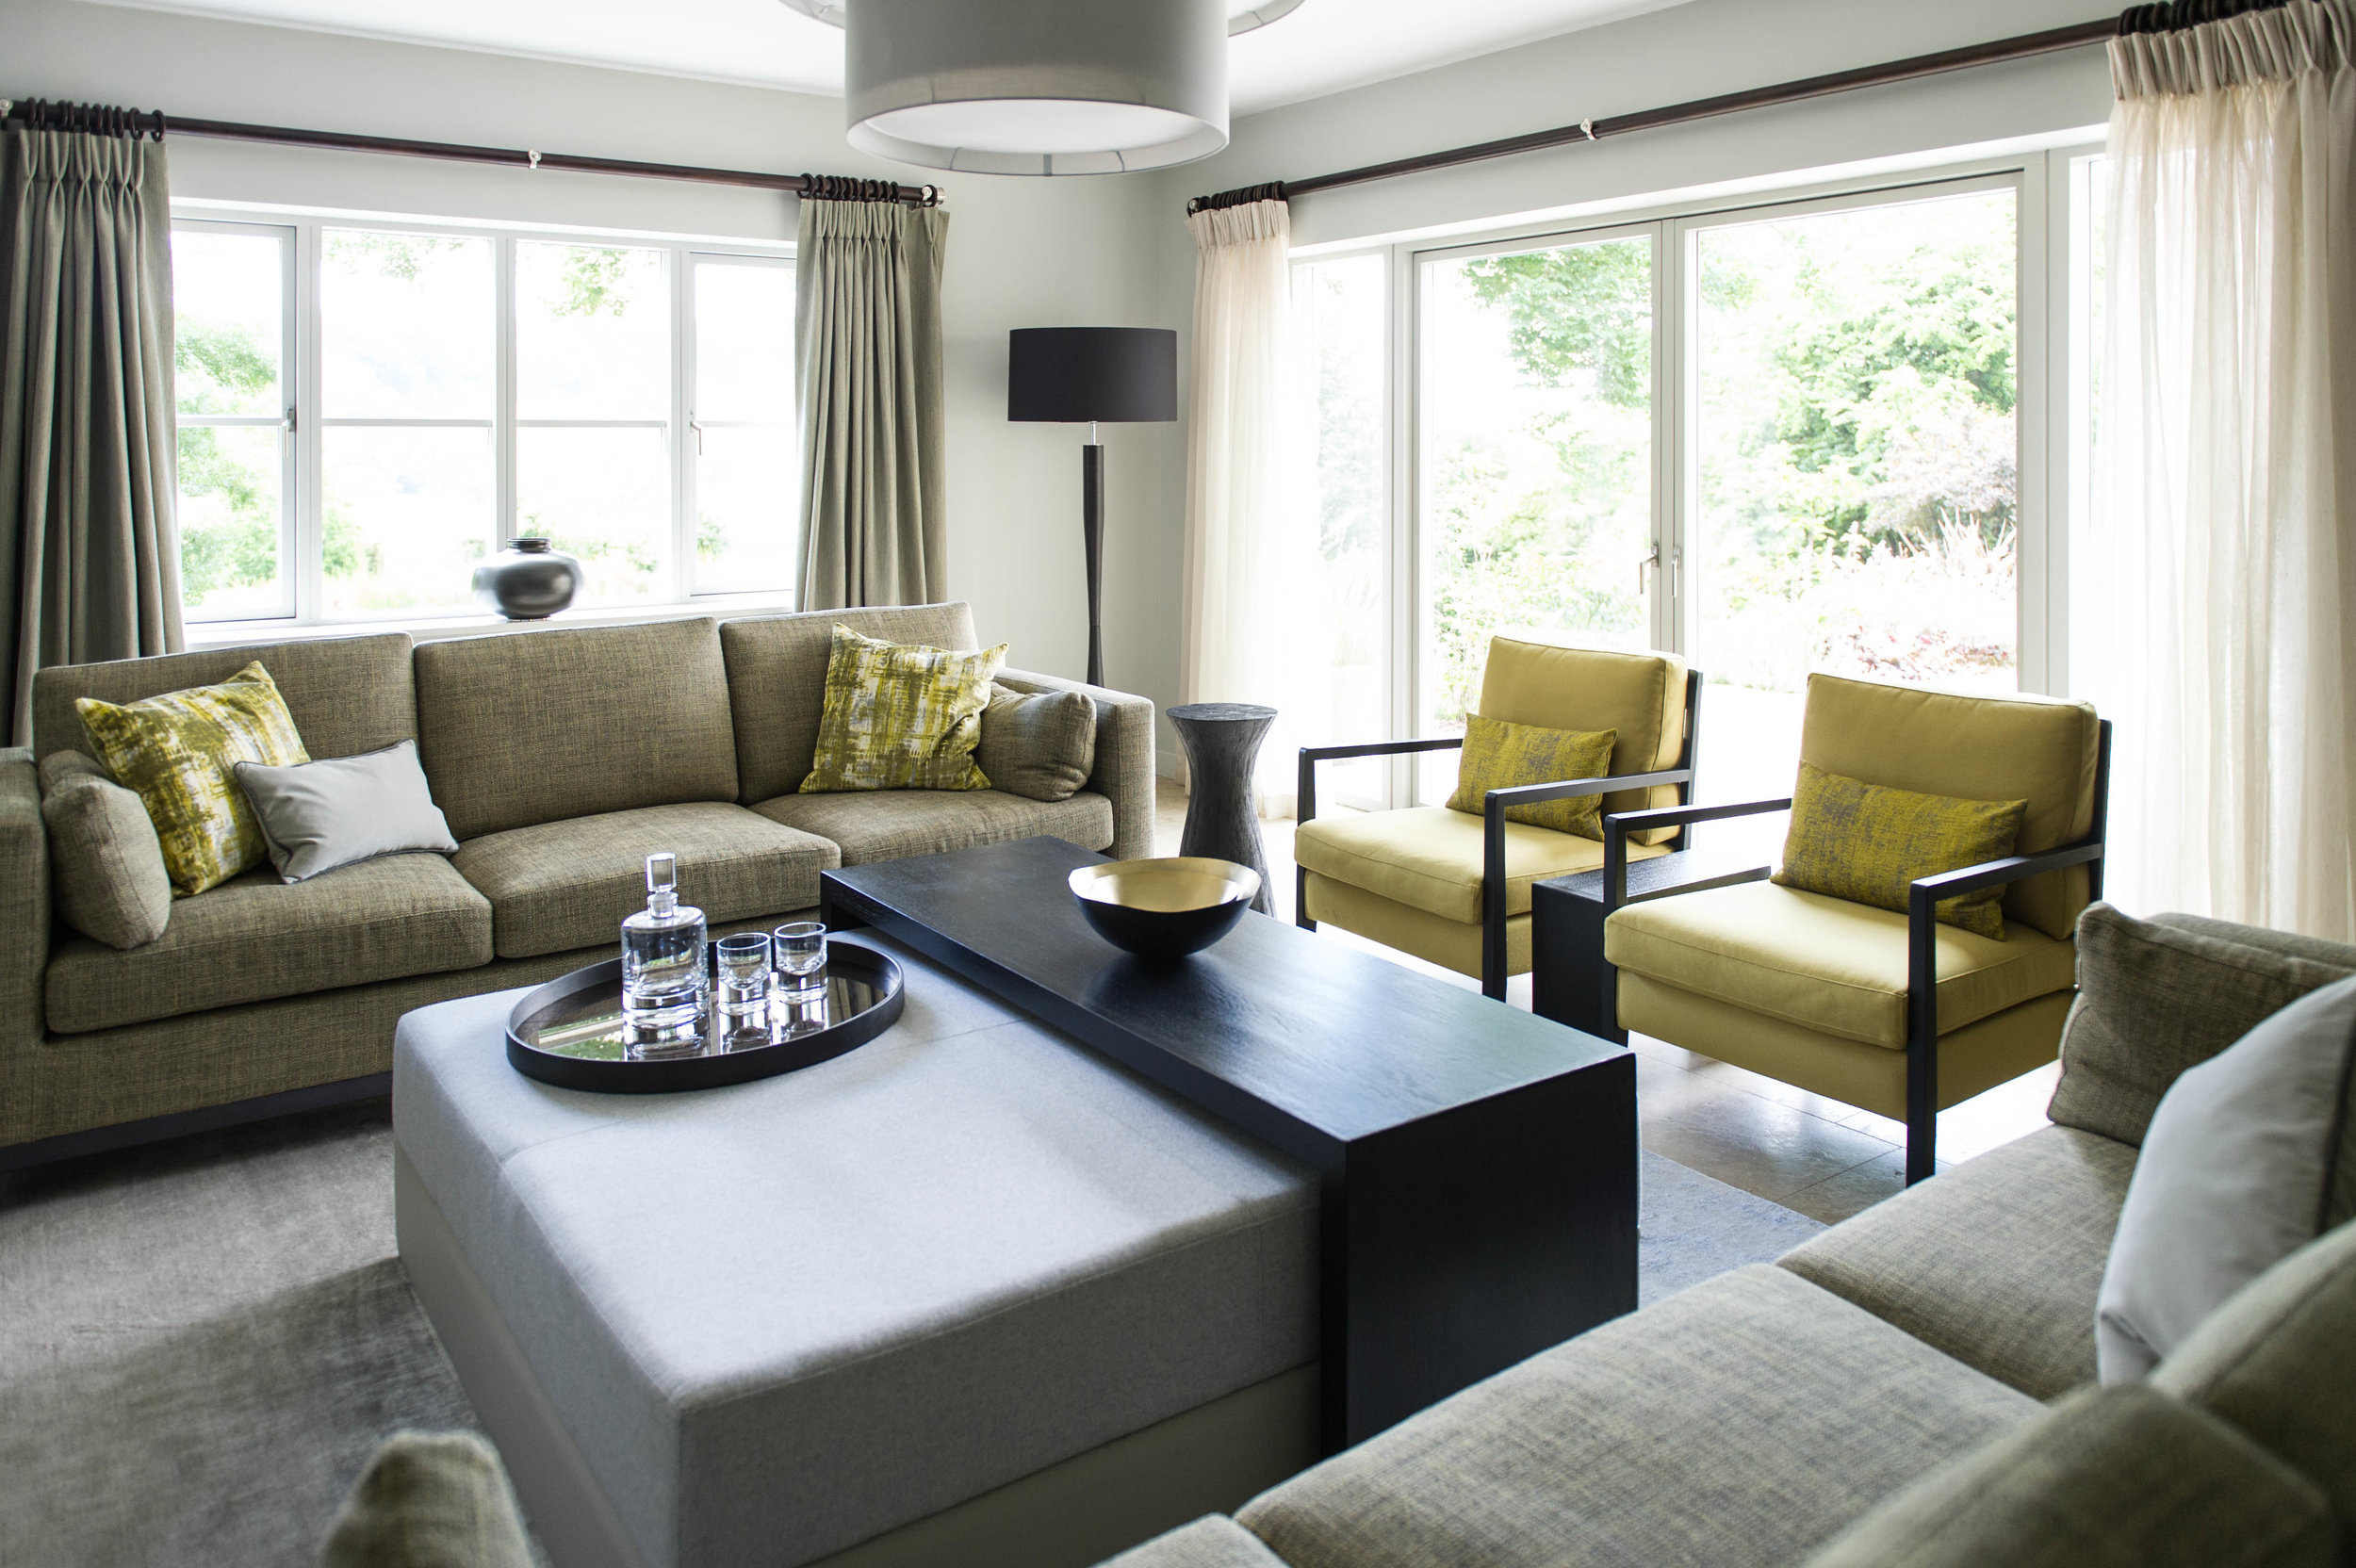 Sitting room in chartreuse tones with pair of sofas dressed with chartreuse and grey cushions, pair of armchairs, ottoman with bespoke coffee table, side table and floor lamp.By Joseph Interior Design, Cheltenham.